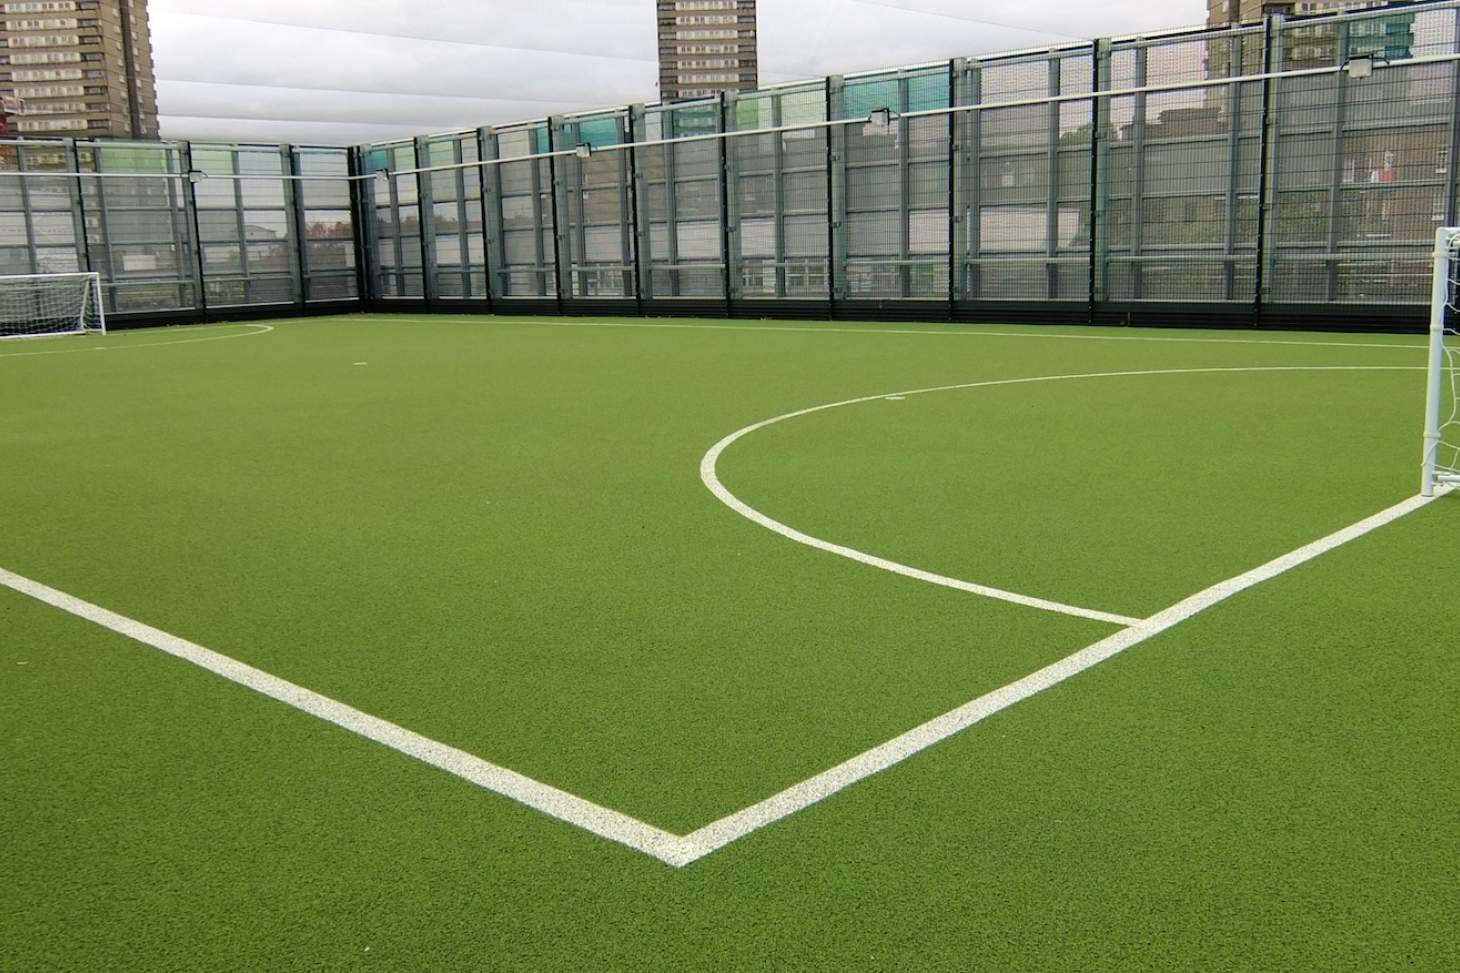 Kensington Aldridge Academy 5 a side | Astroturf football pitch